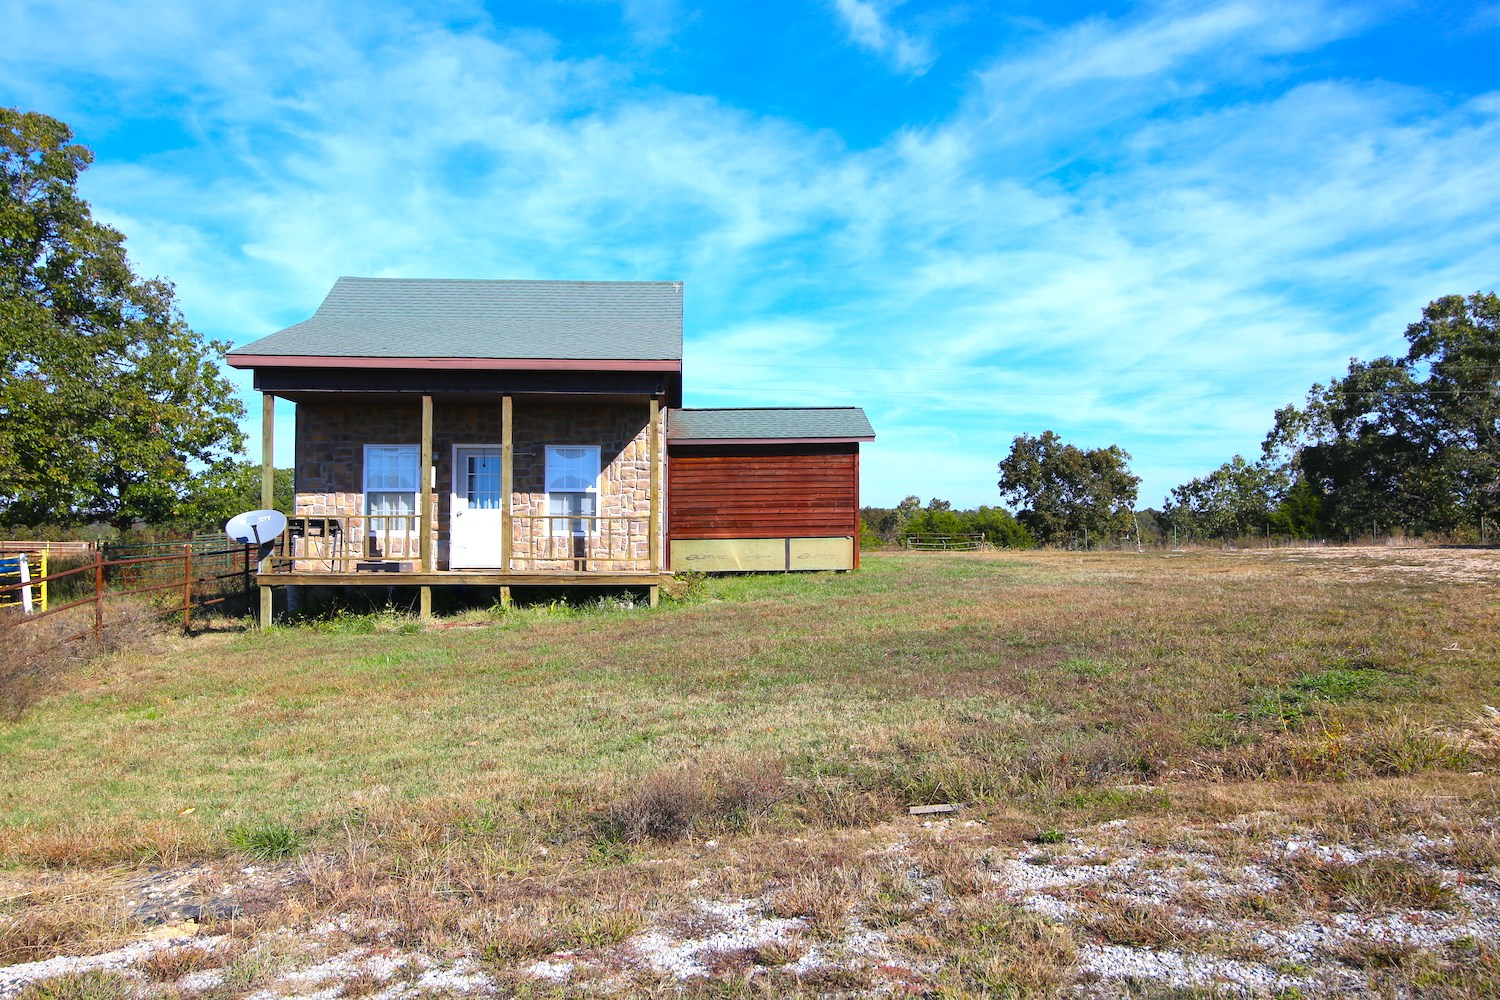 Hobby Farm For Sale with Cabin in the Ozarks of Southern MO